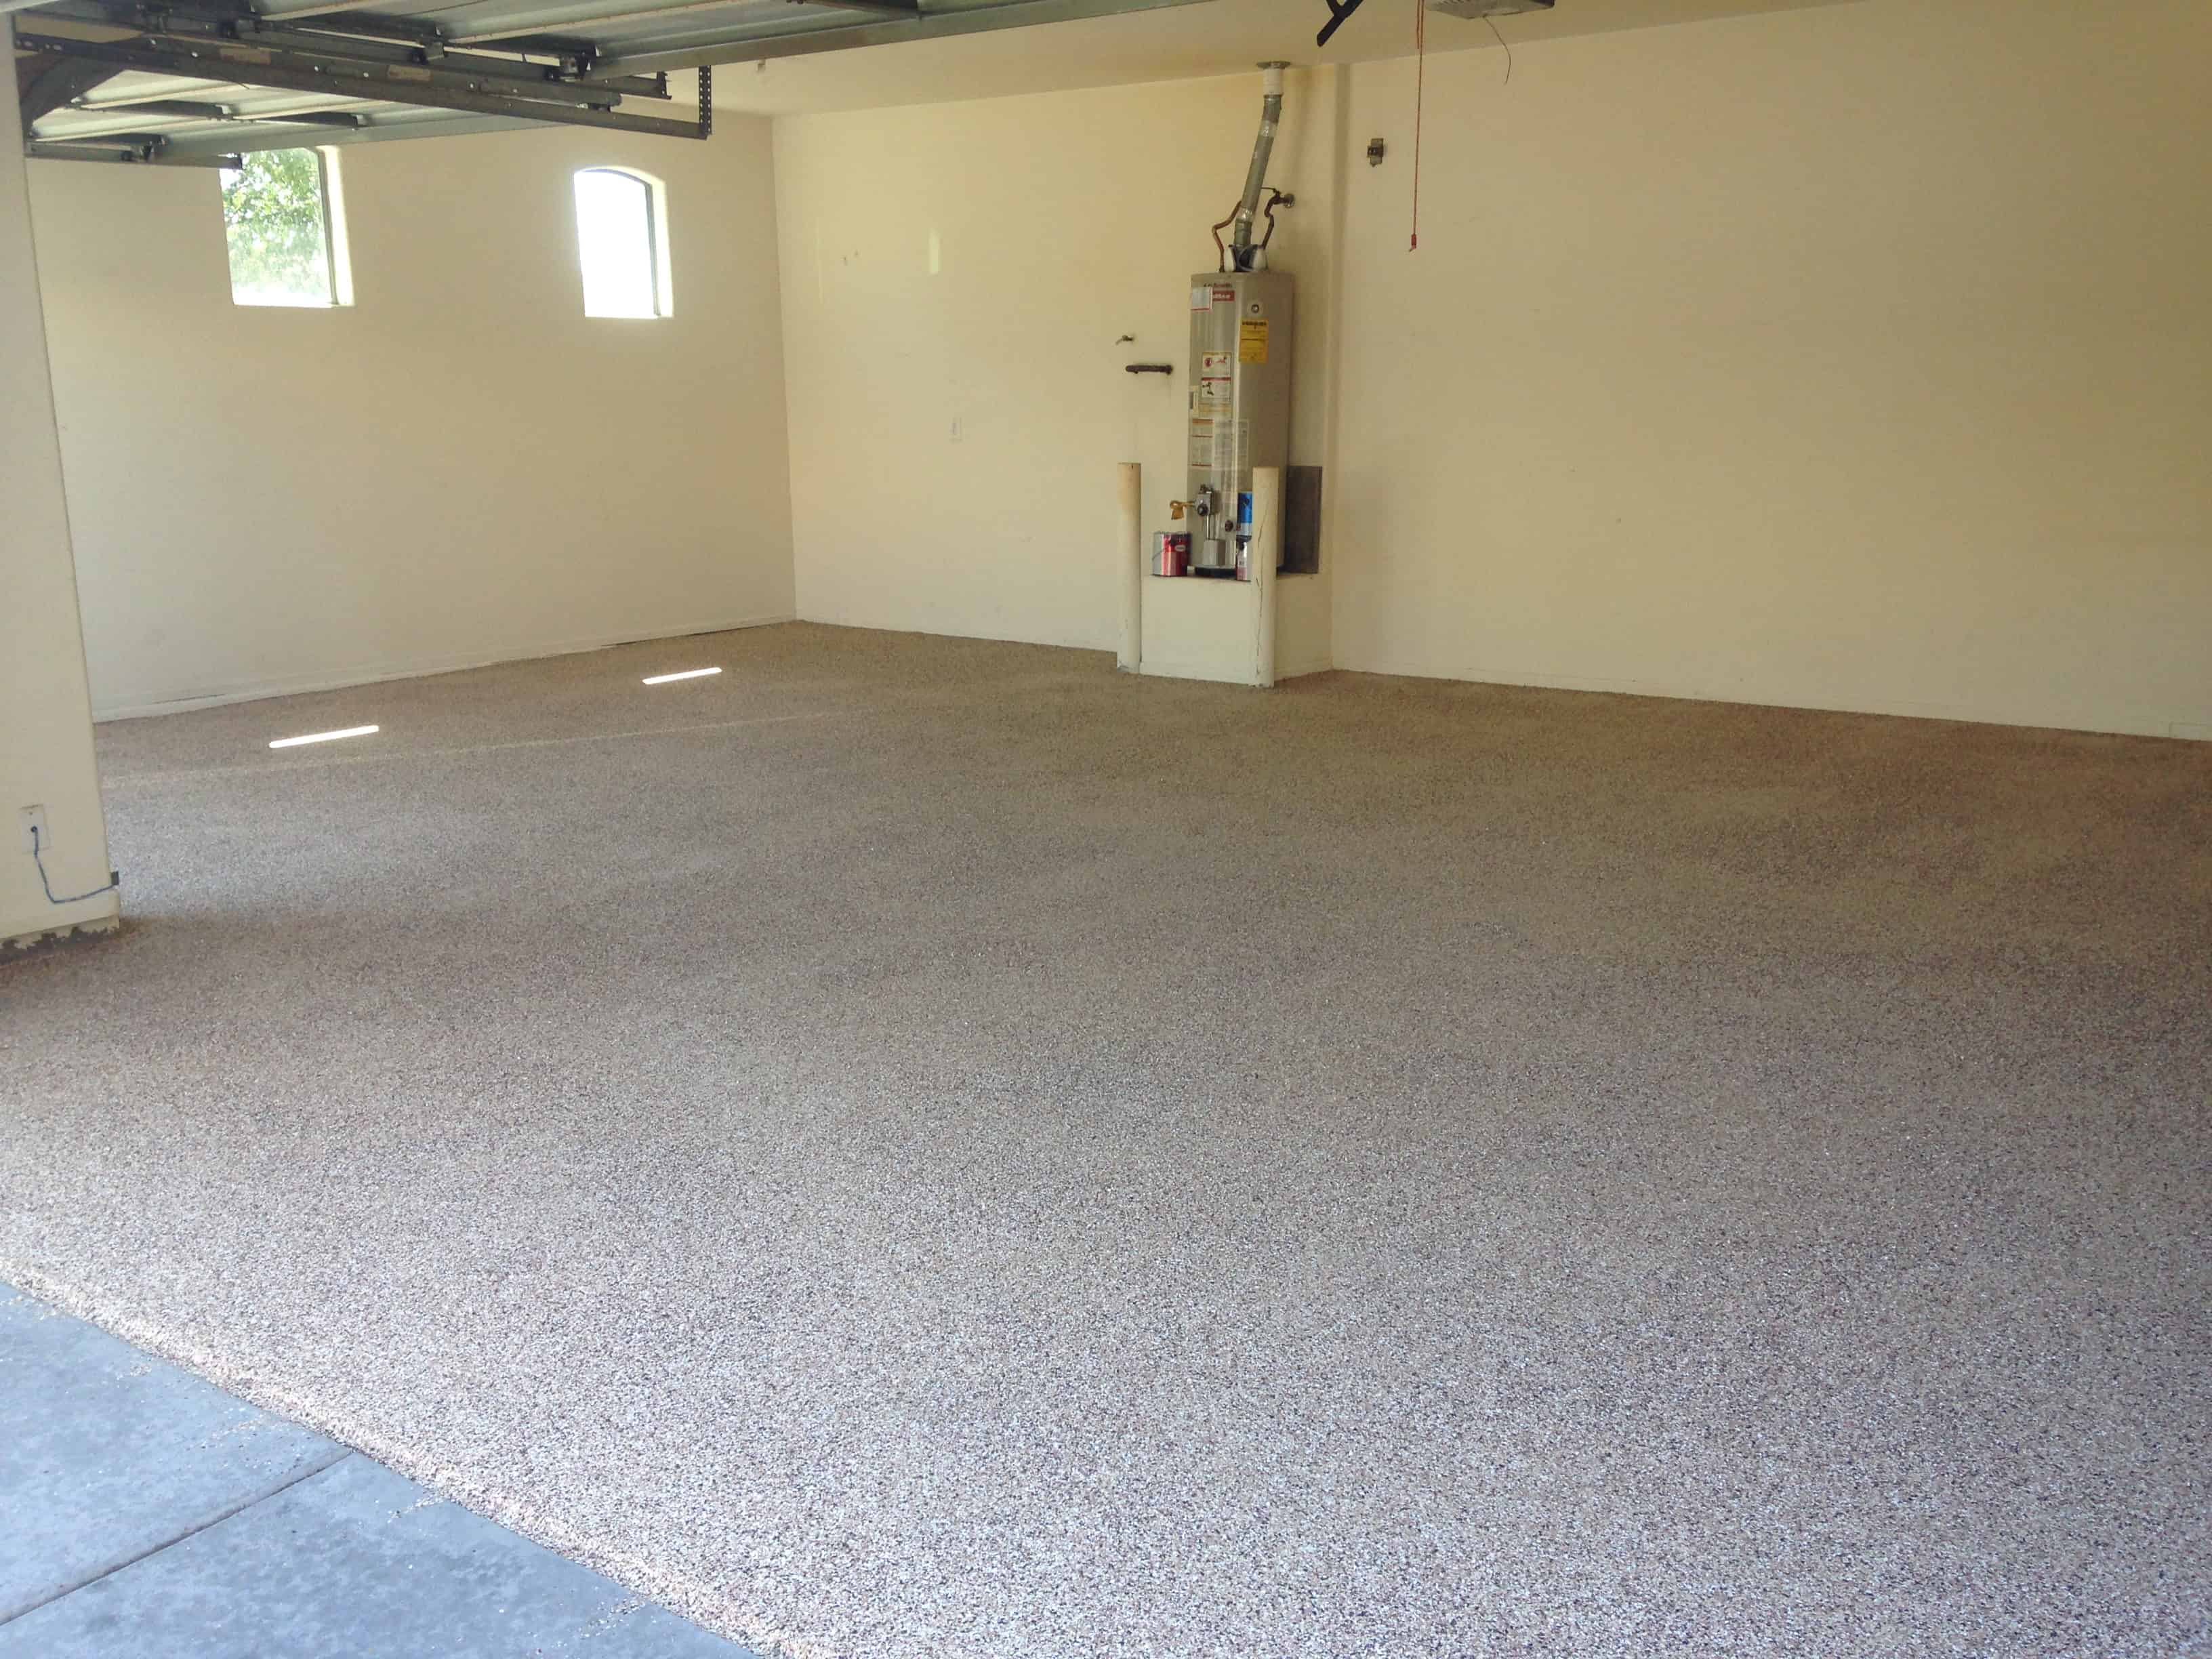 Garage Floor Maintenance Of Best Garage Epoxy Coating Carefree Stone 602 867 0867